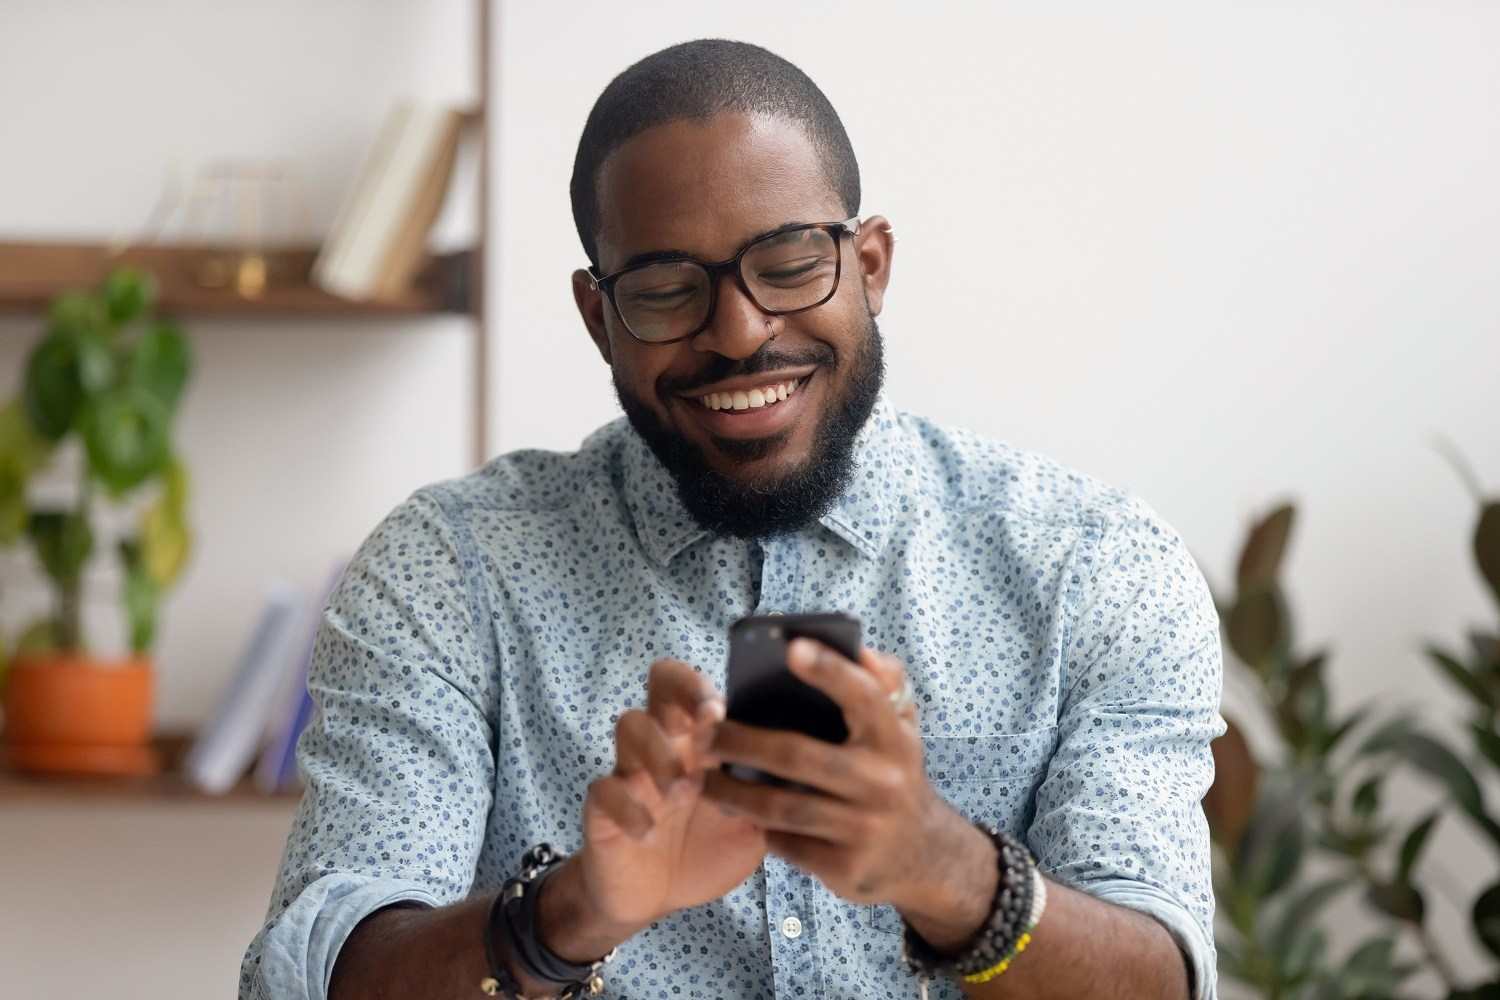 man smiling and using his smartphone